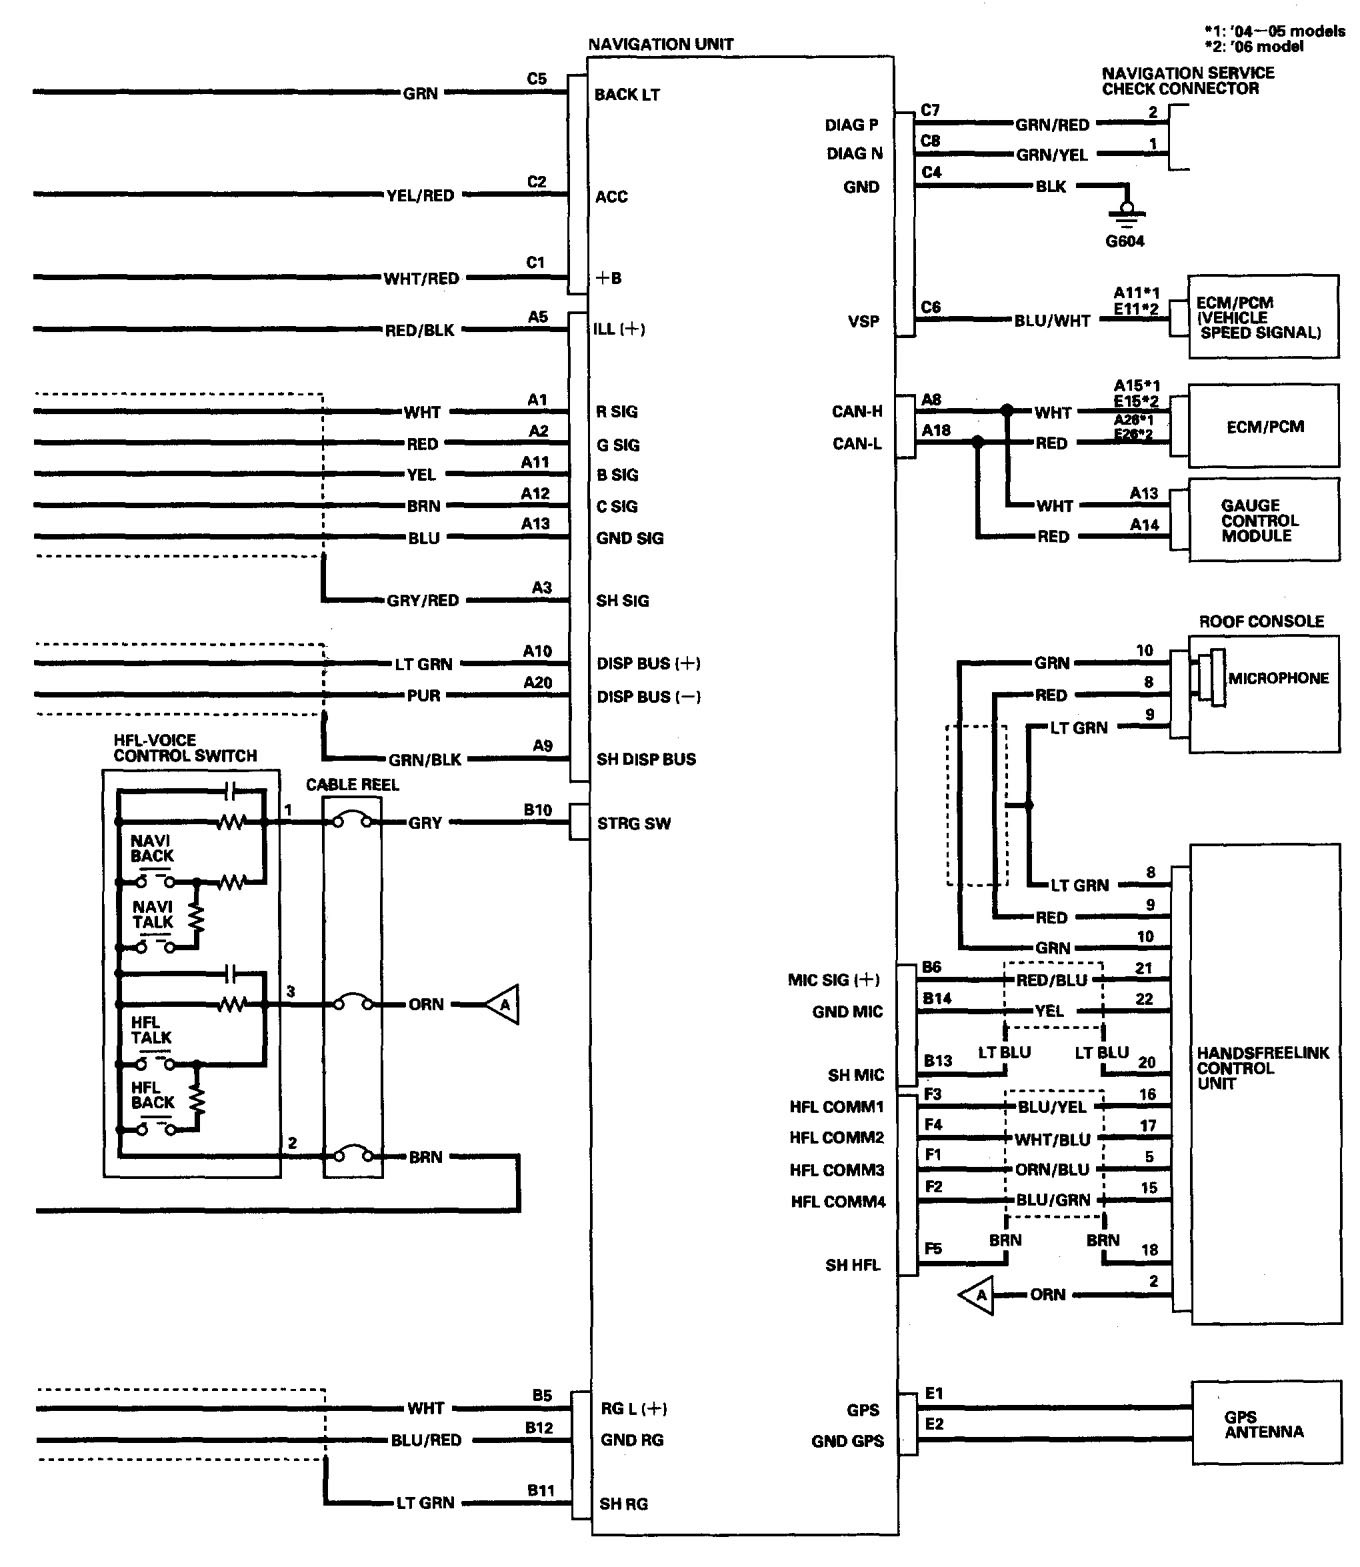 Acura Tsx Radio Wiring Diagram Wiring Diagrams My